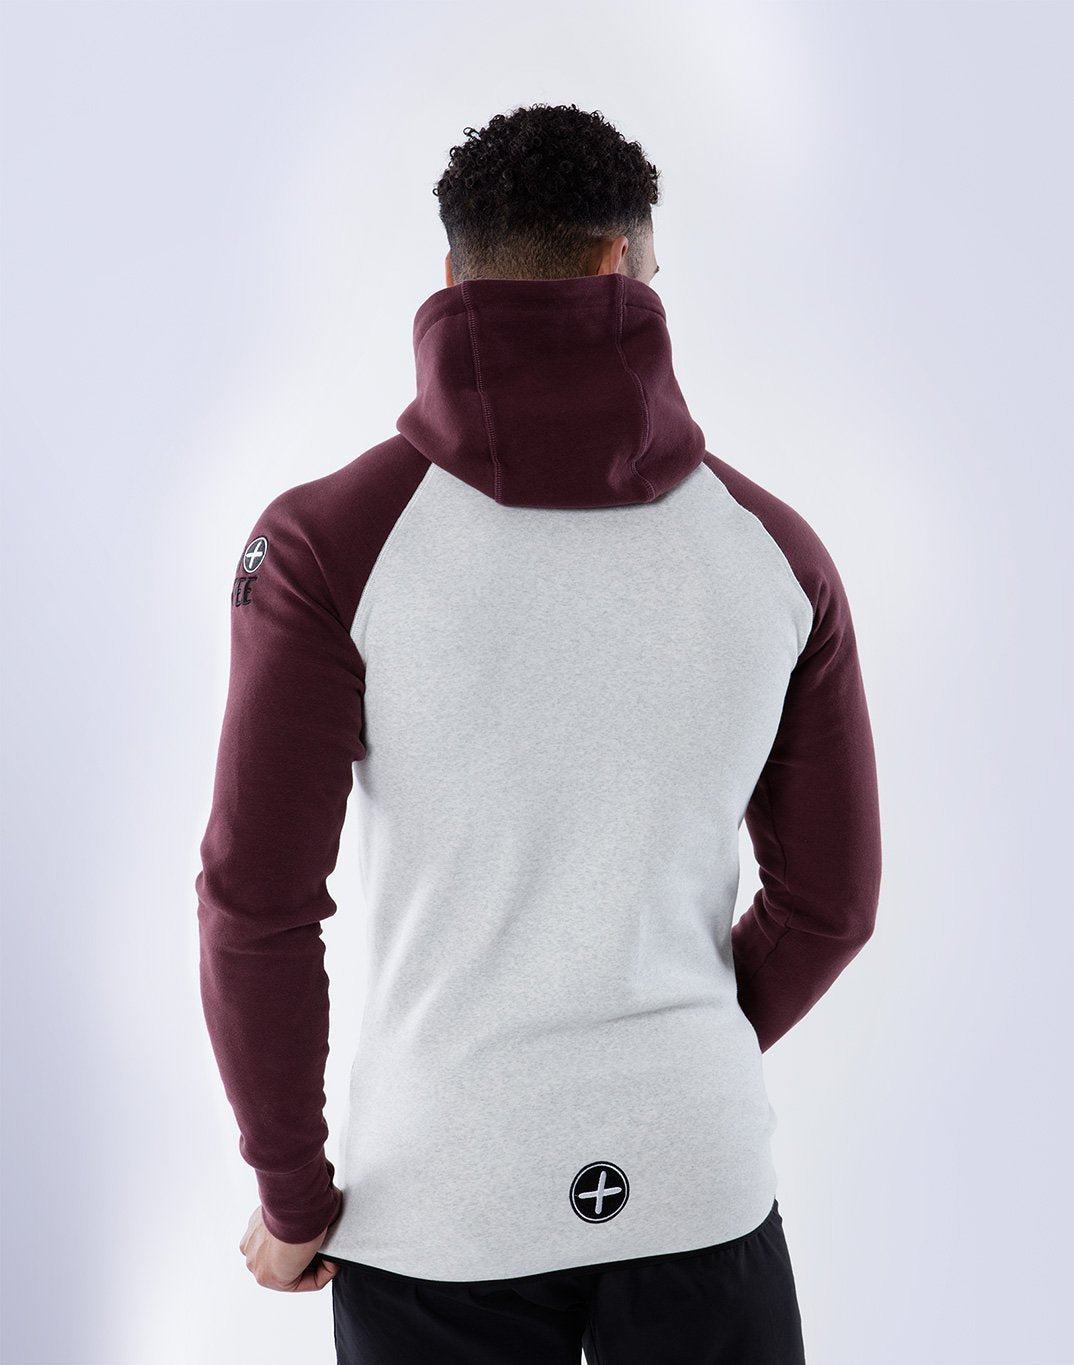 Gym Plus Coffee Hoodie Chill 2Tone Hoodie in Grape/Cream Designed in Ireland